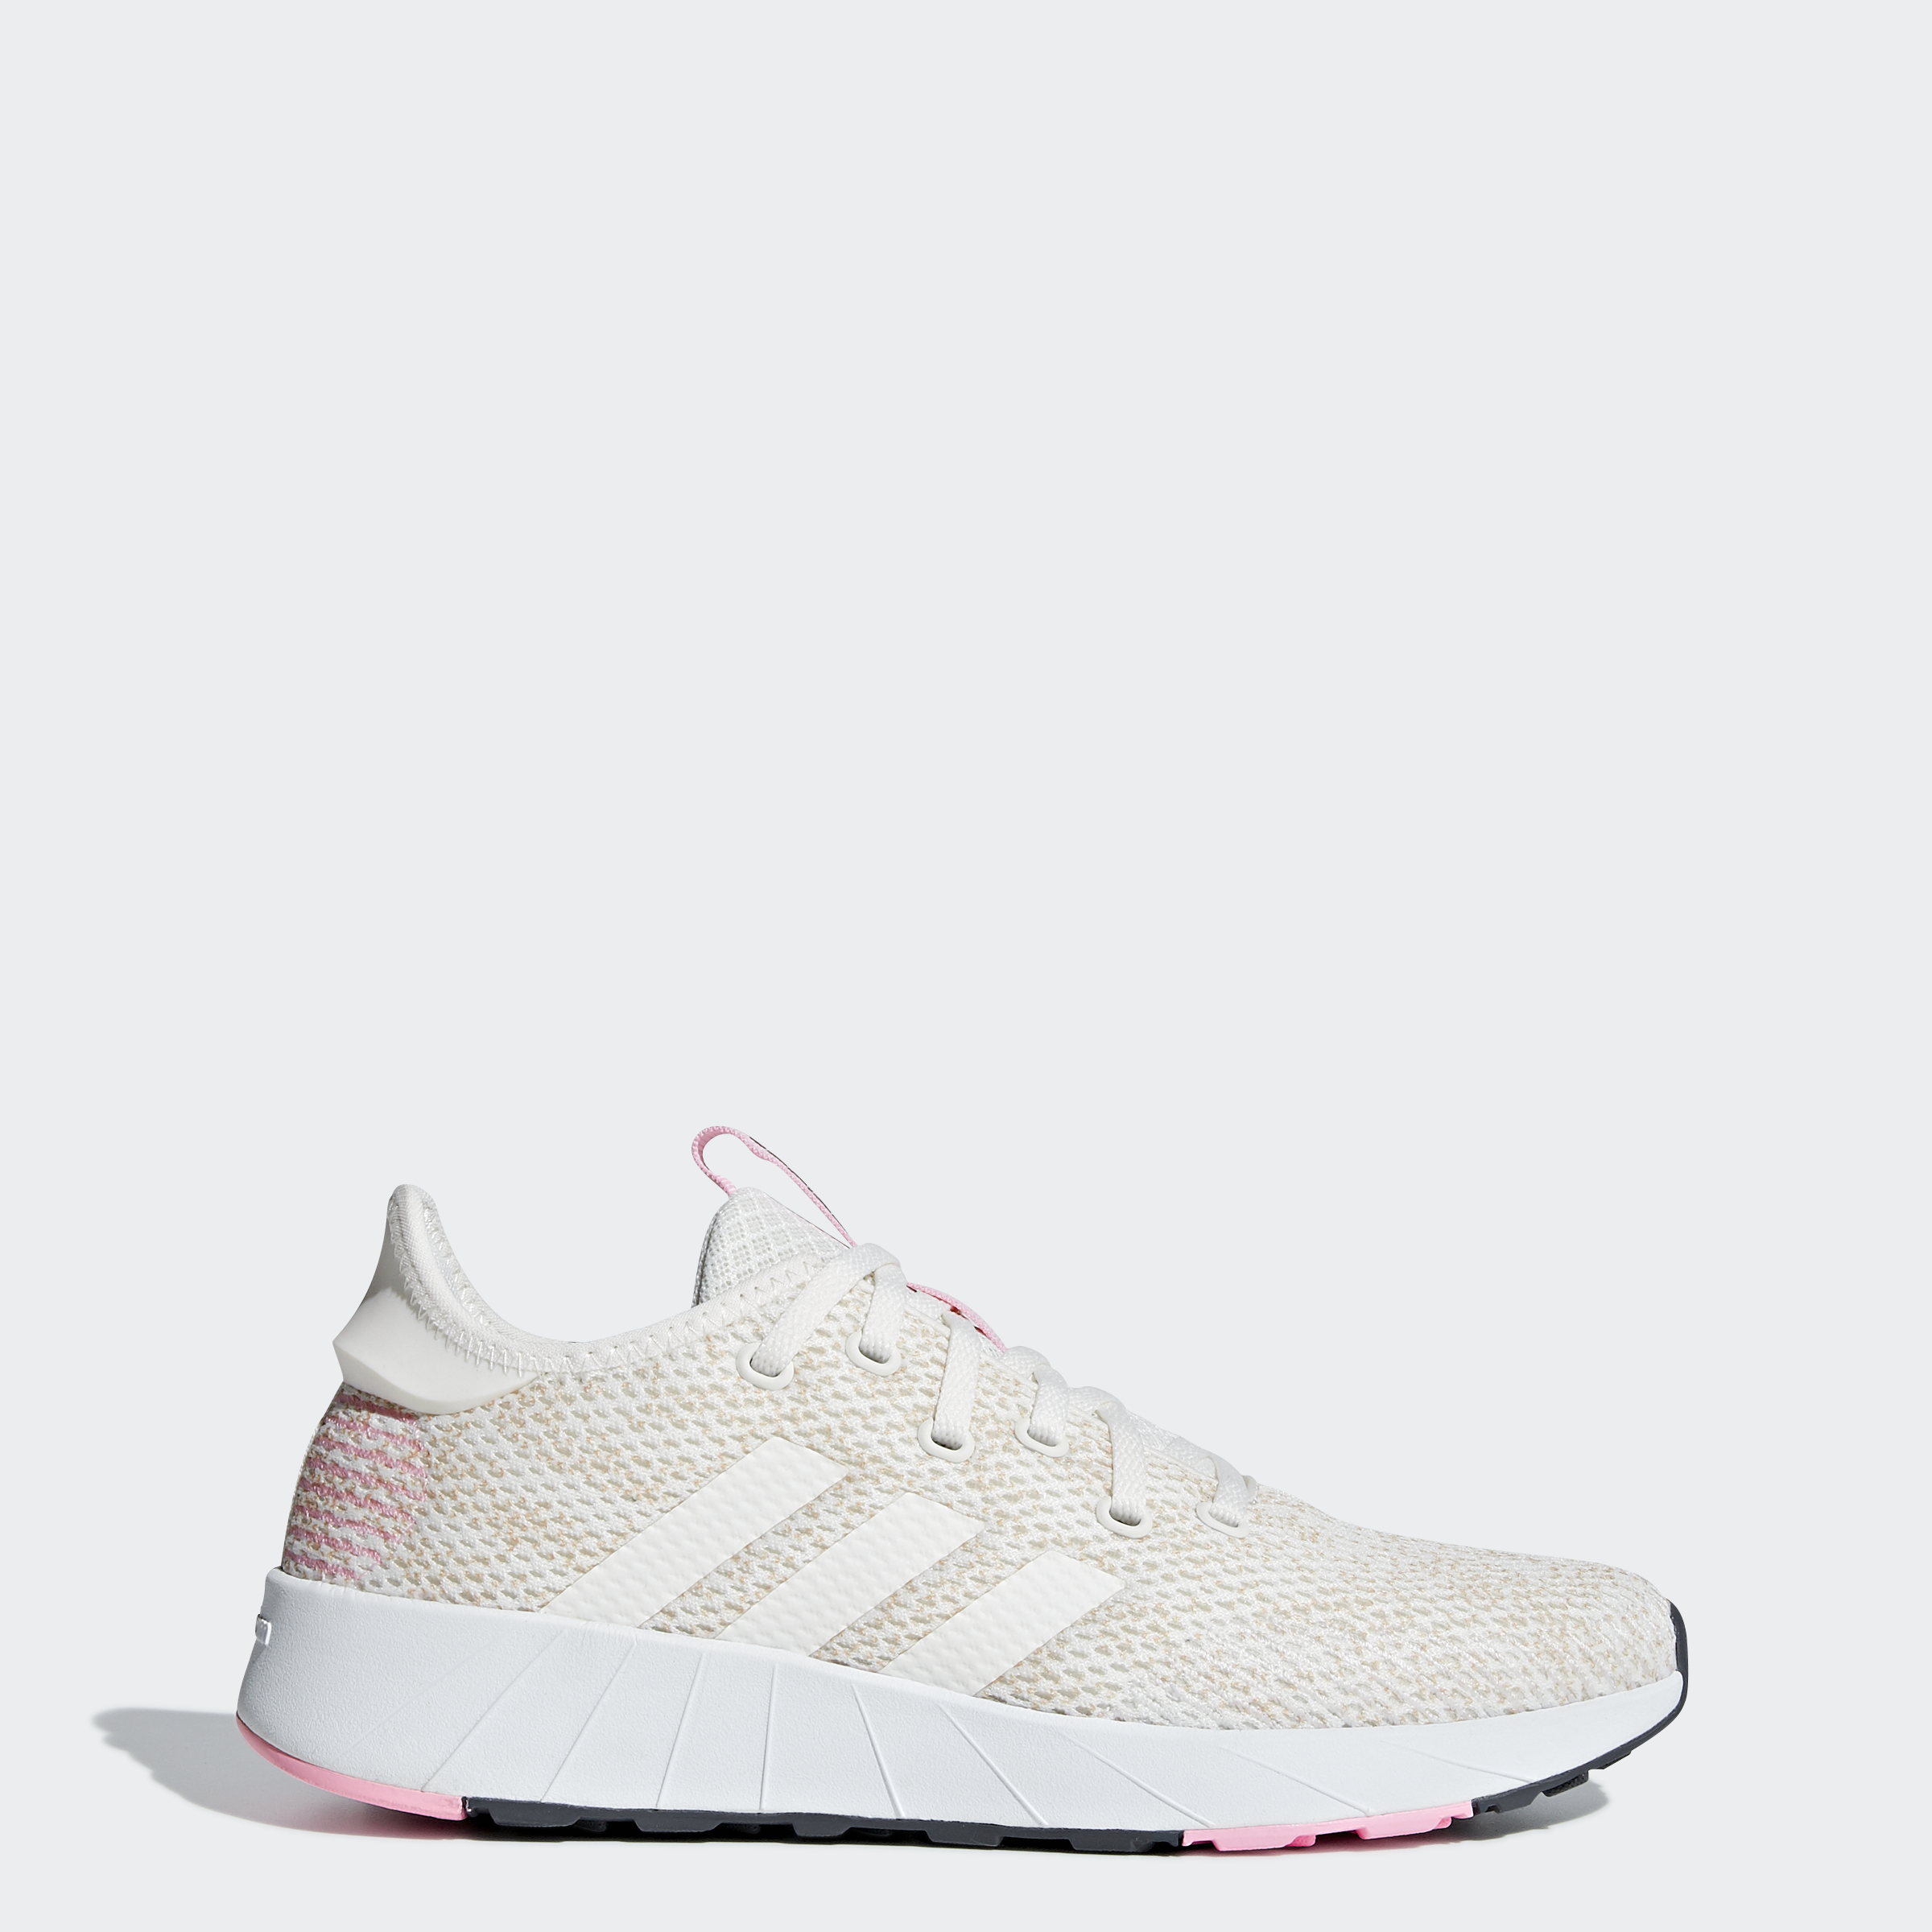 cost charm 100% top quality cheapest price adidas Questar X BYD Shoes Women's | eBay